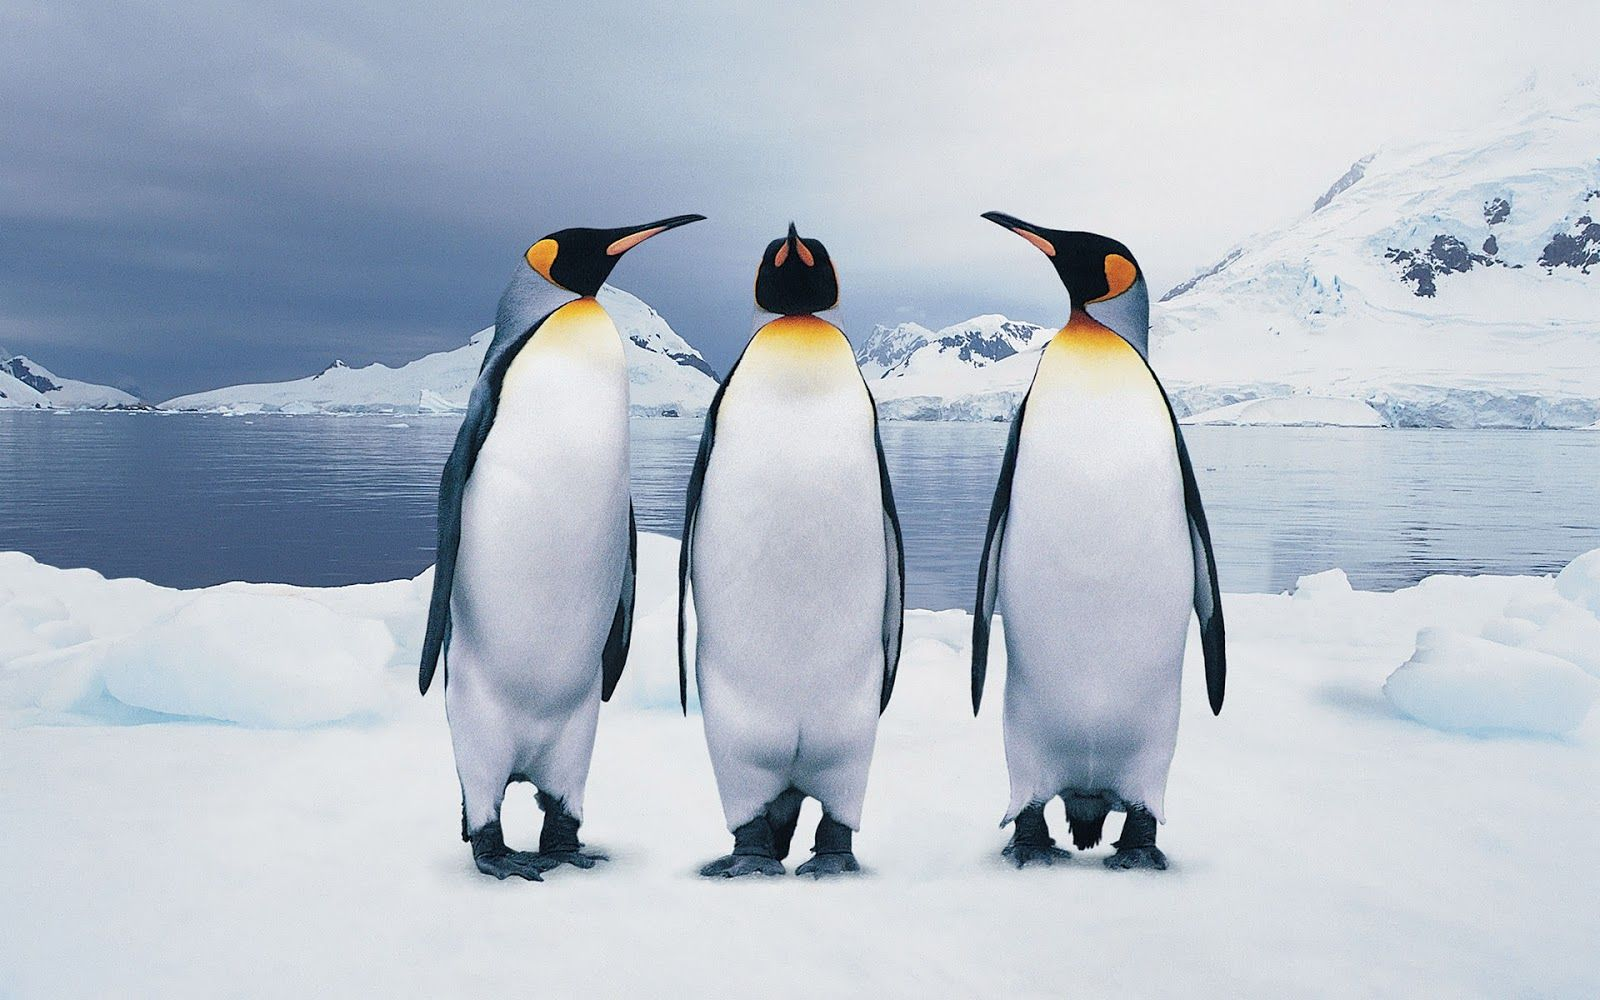 pictures of the penguin